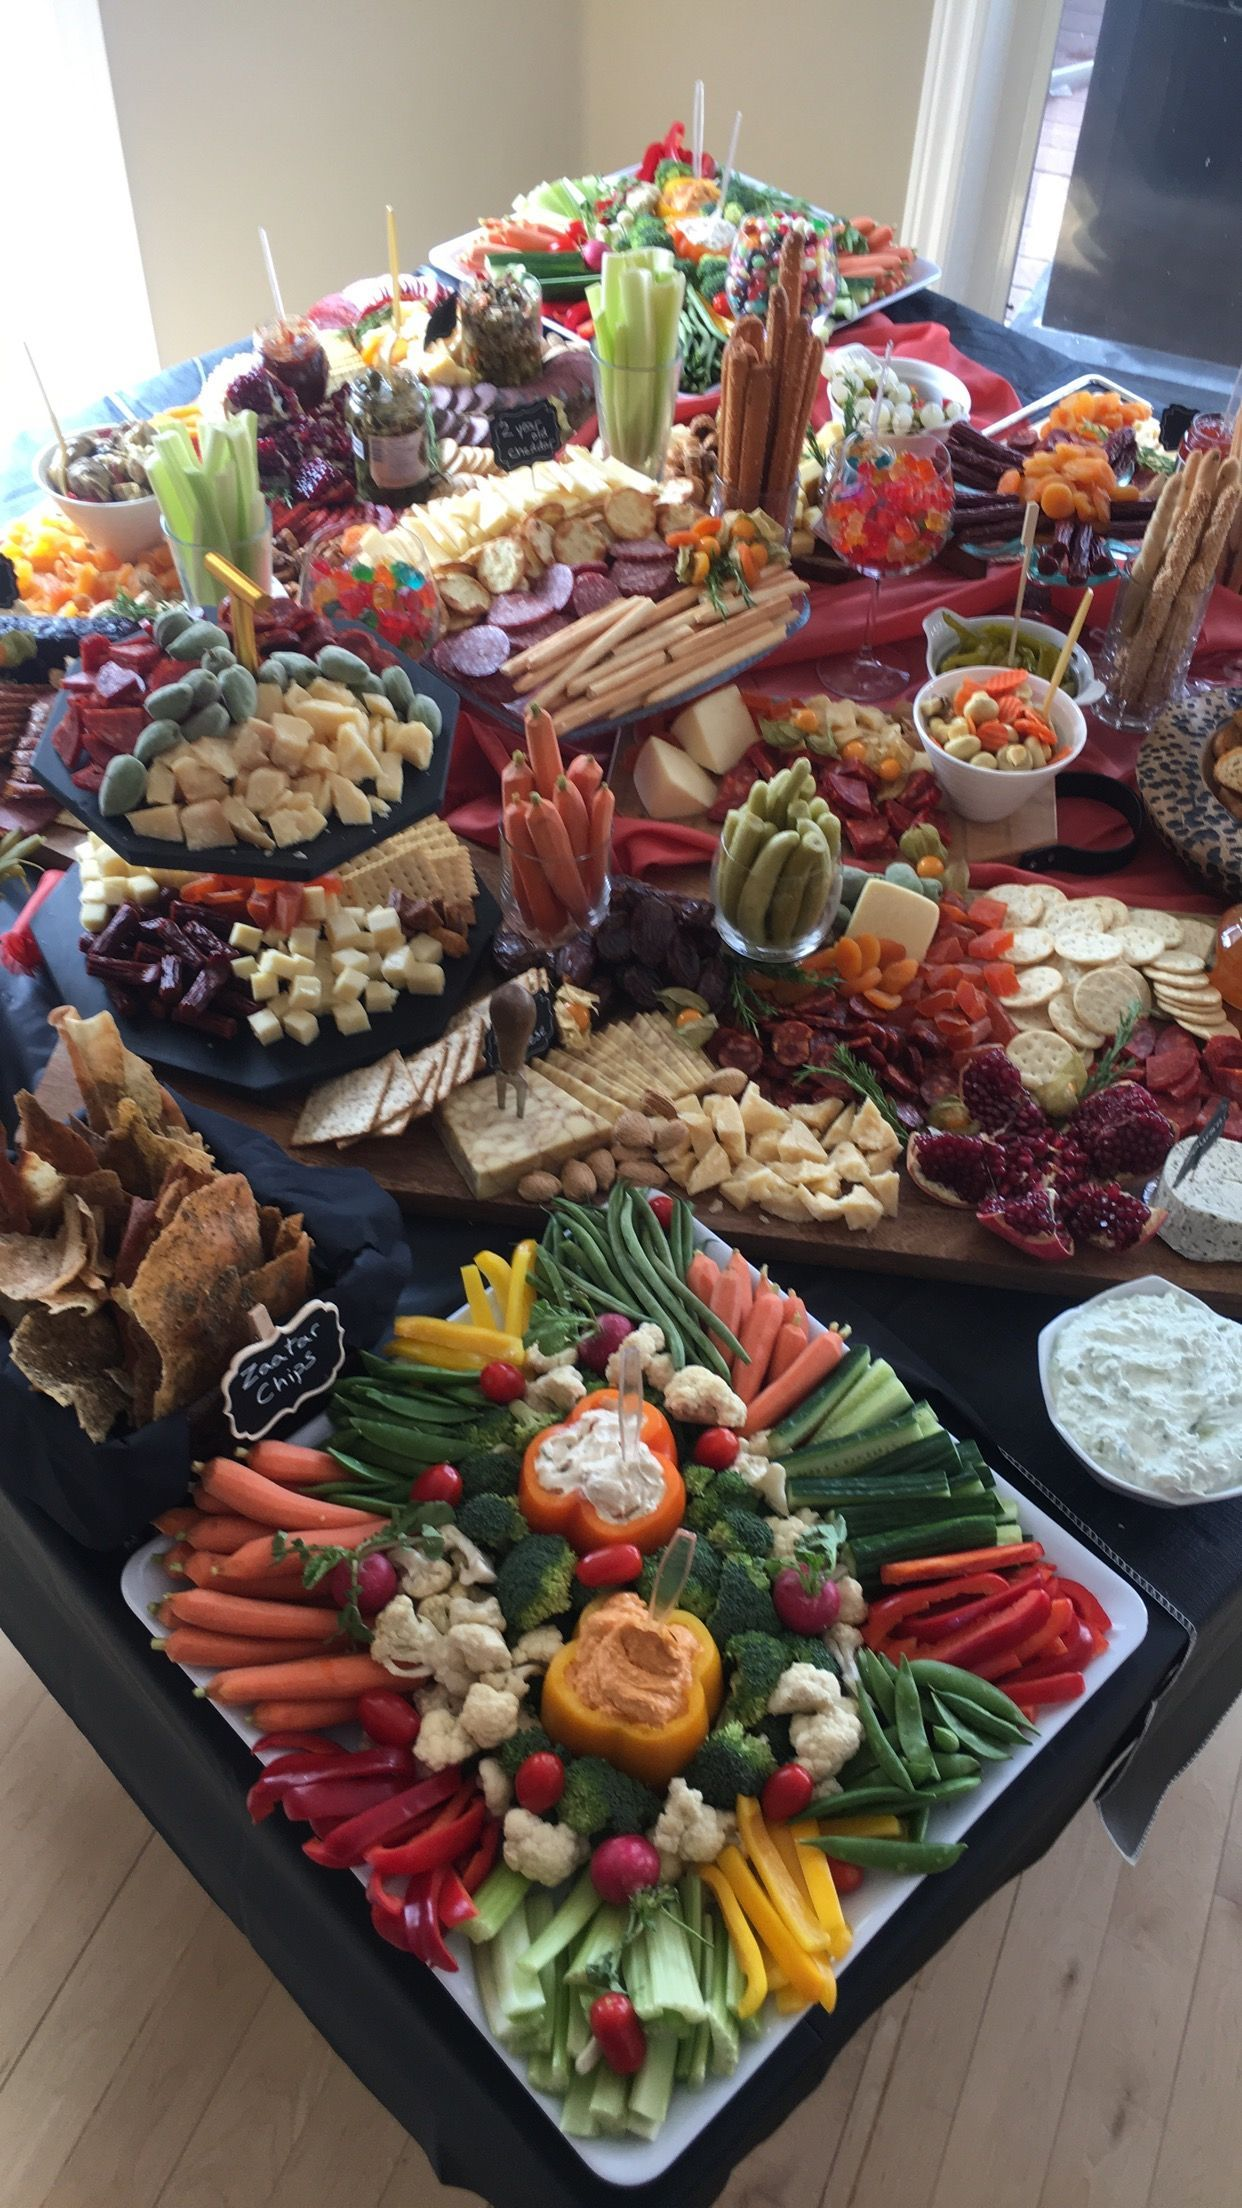 How To Make A Beautiful Charcuterie Board With Steps And Examples – Fashion To Follow